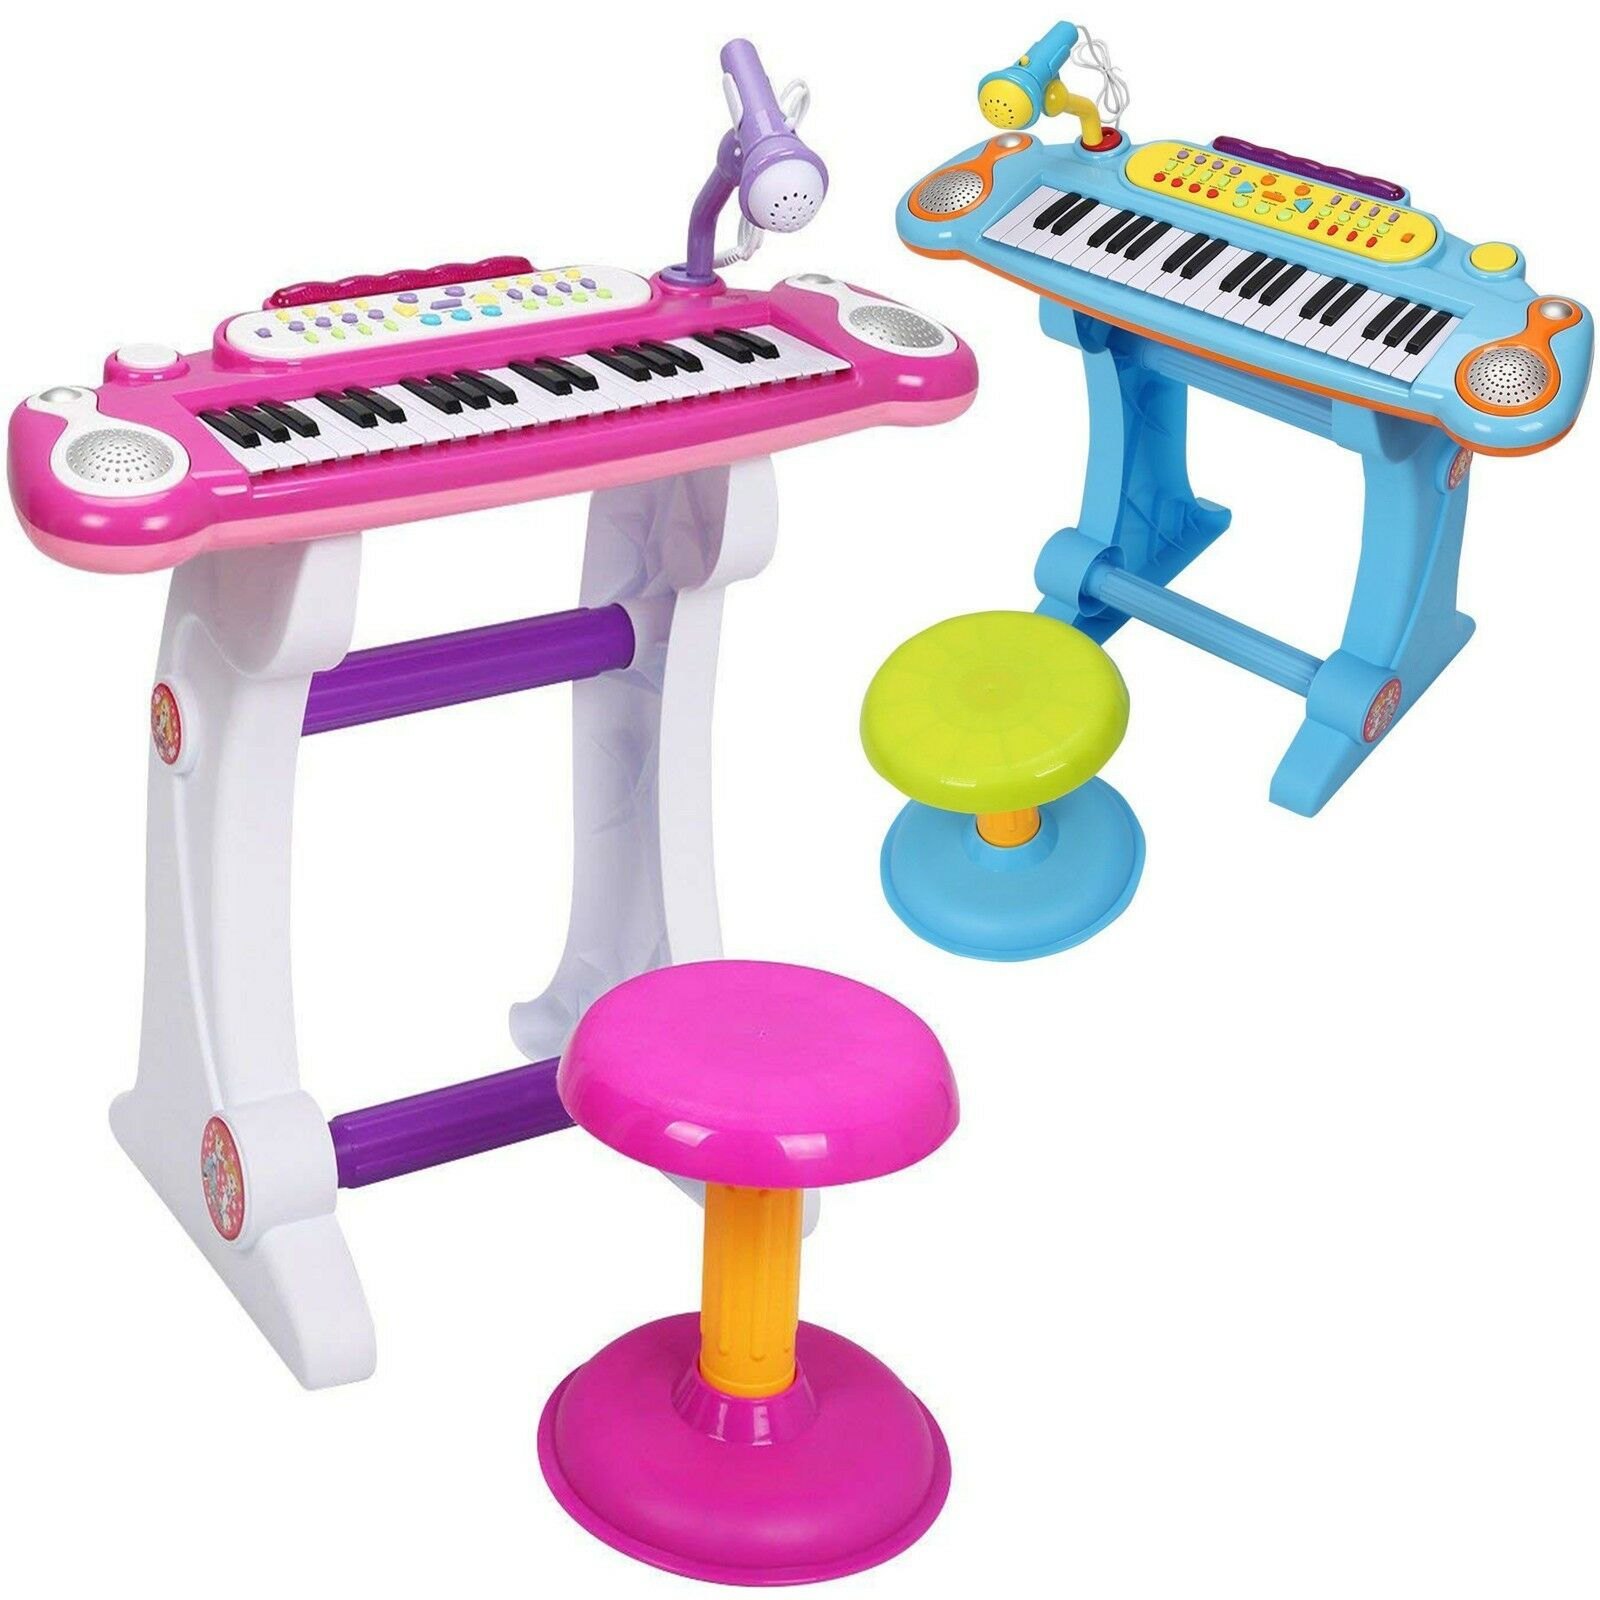 37 Key Kids Electronic Keyboard Piano Set with Microphone & Stool Musical Toy